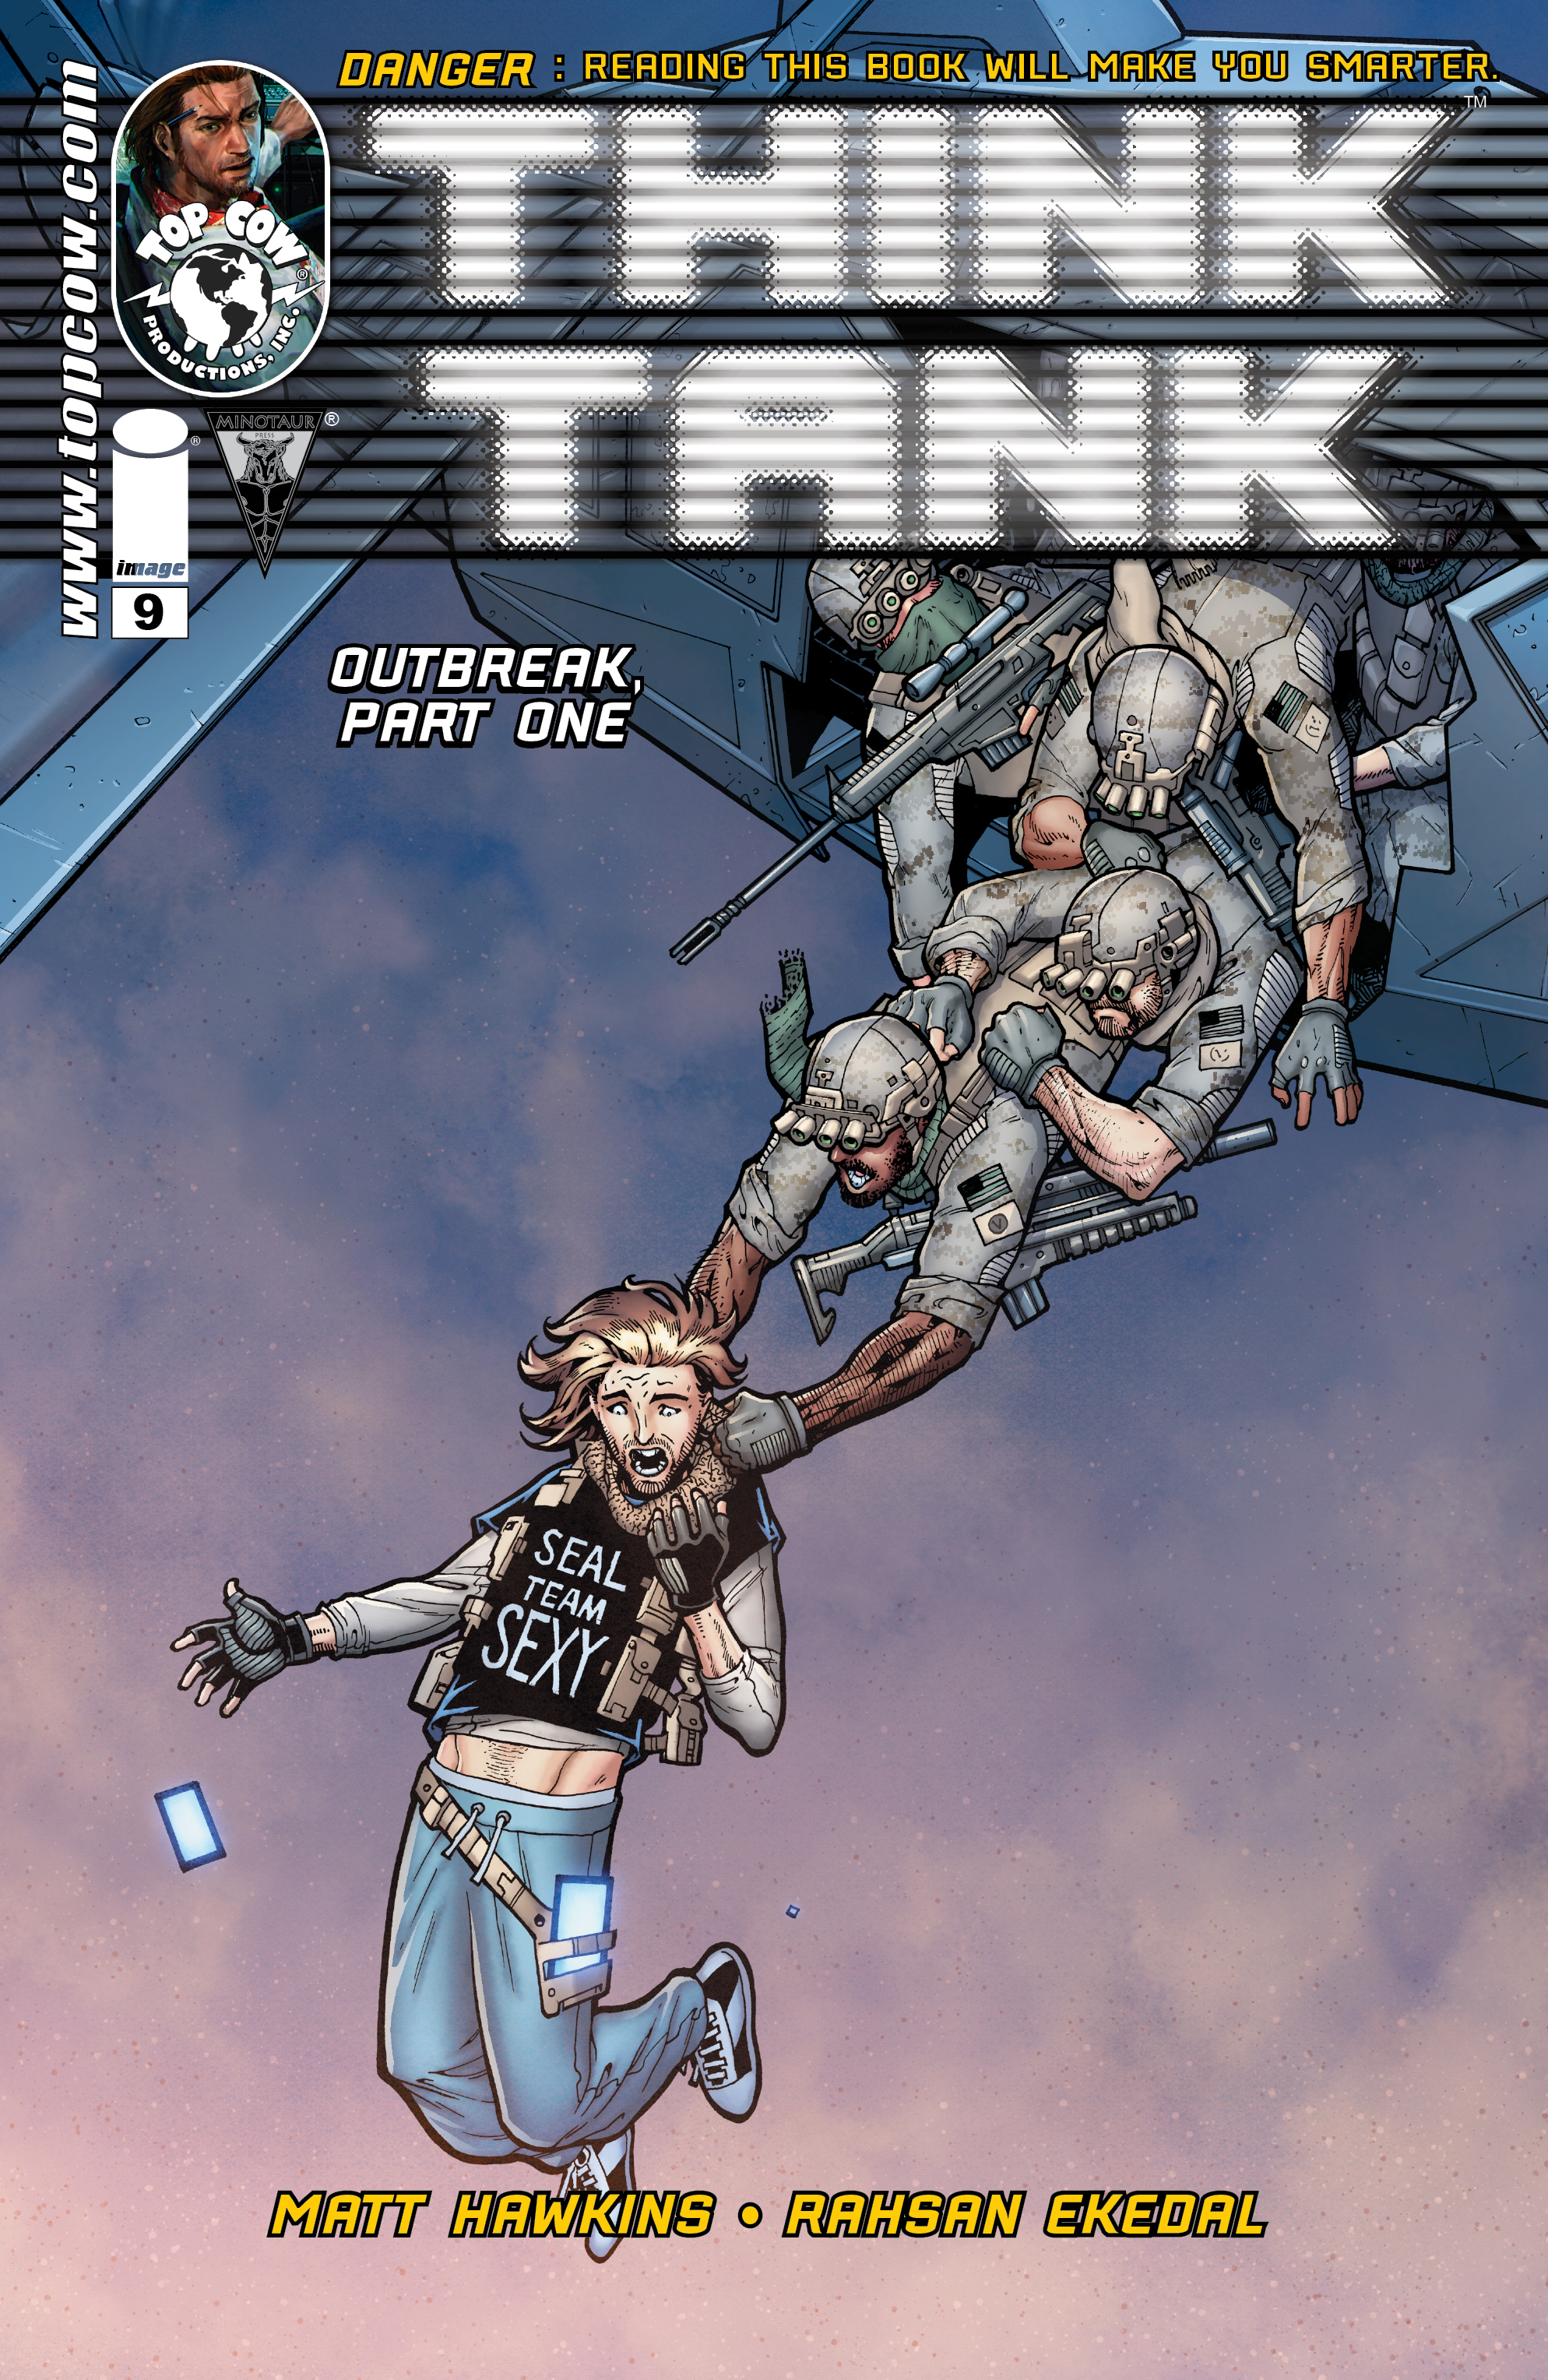 Think Tank 9 C Think Tank #9 Review